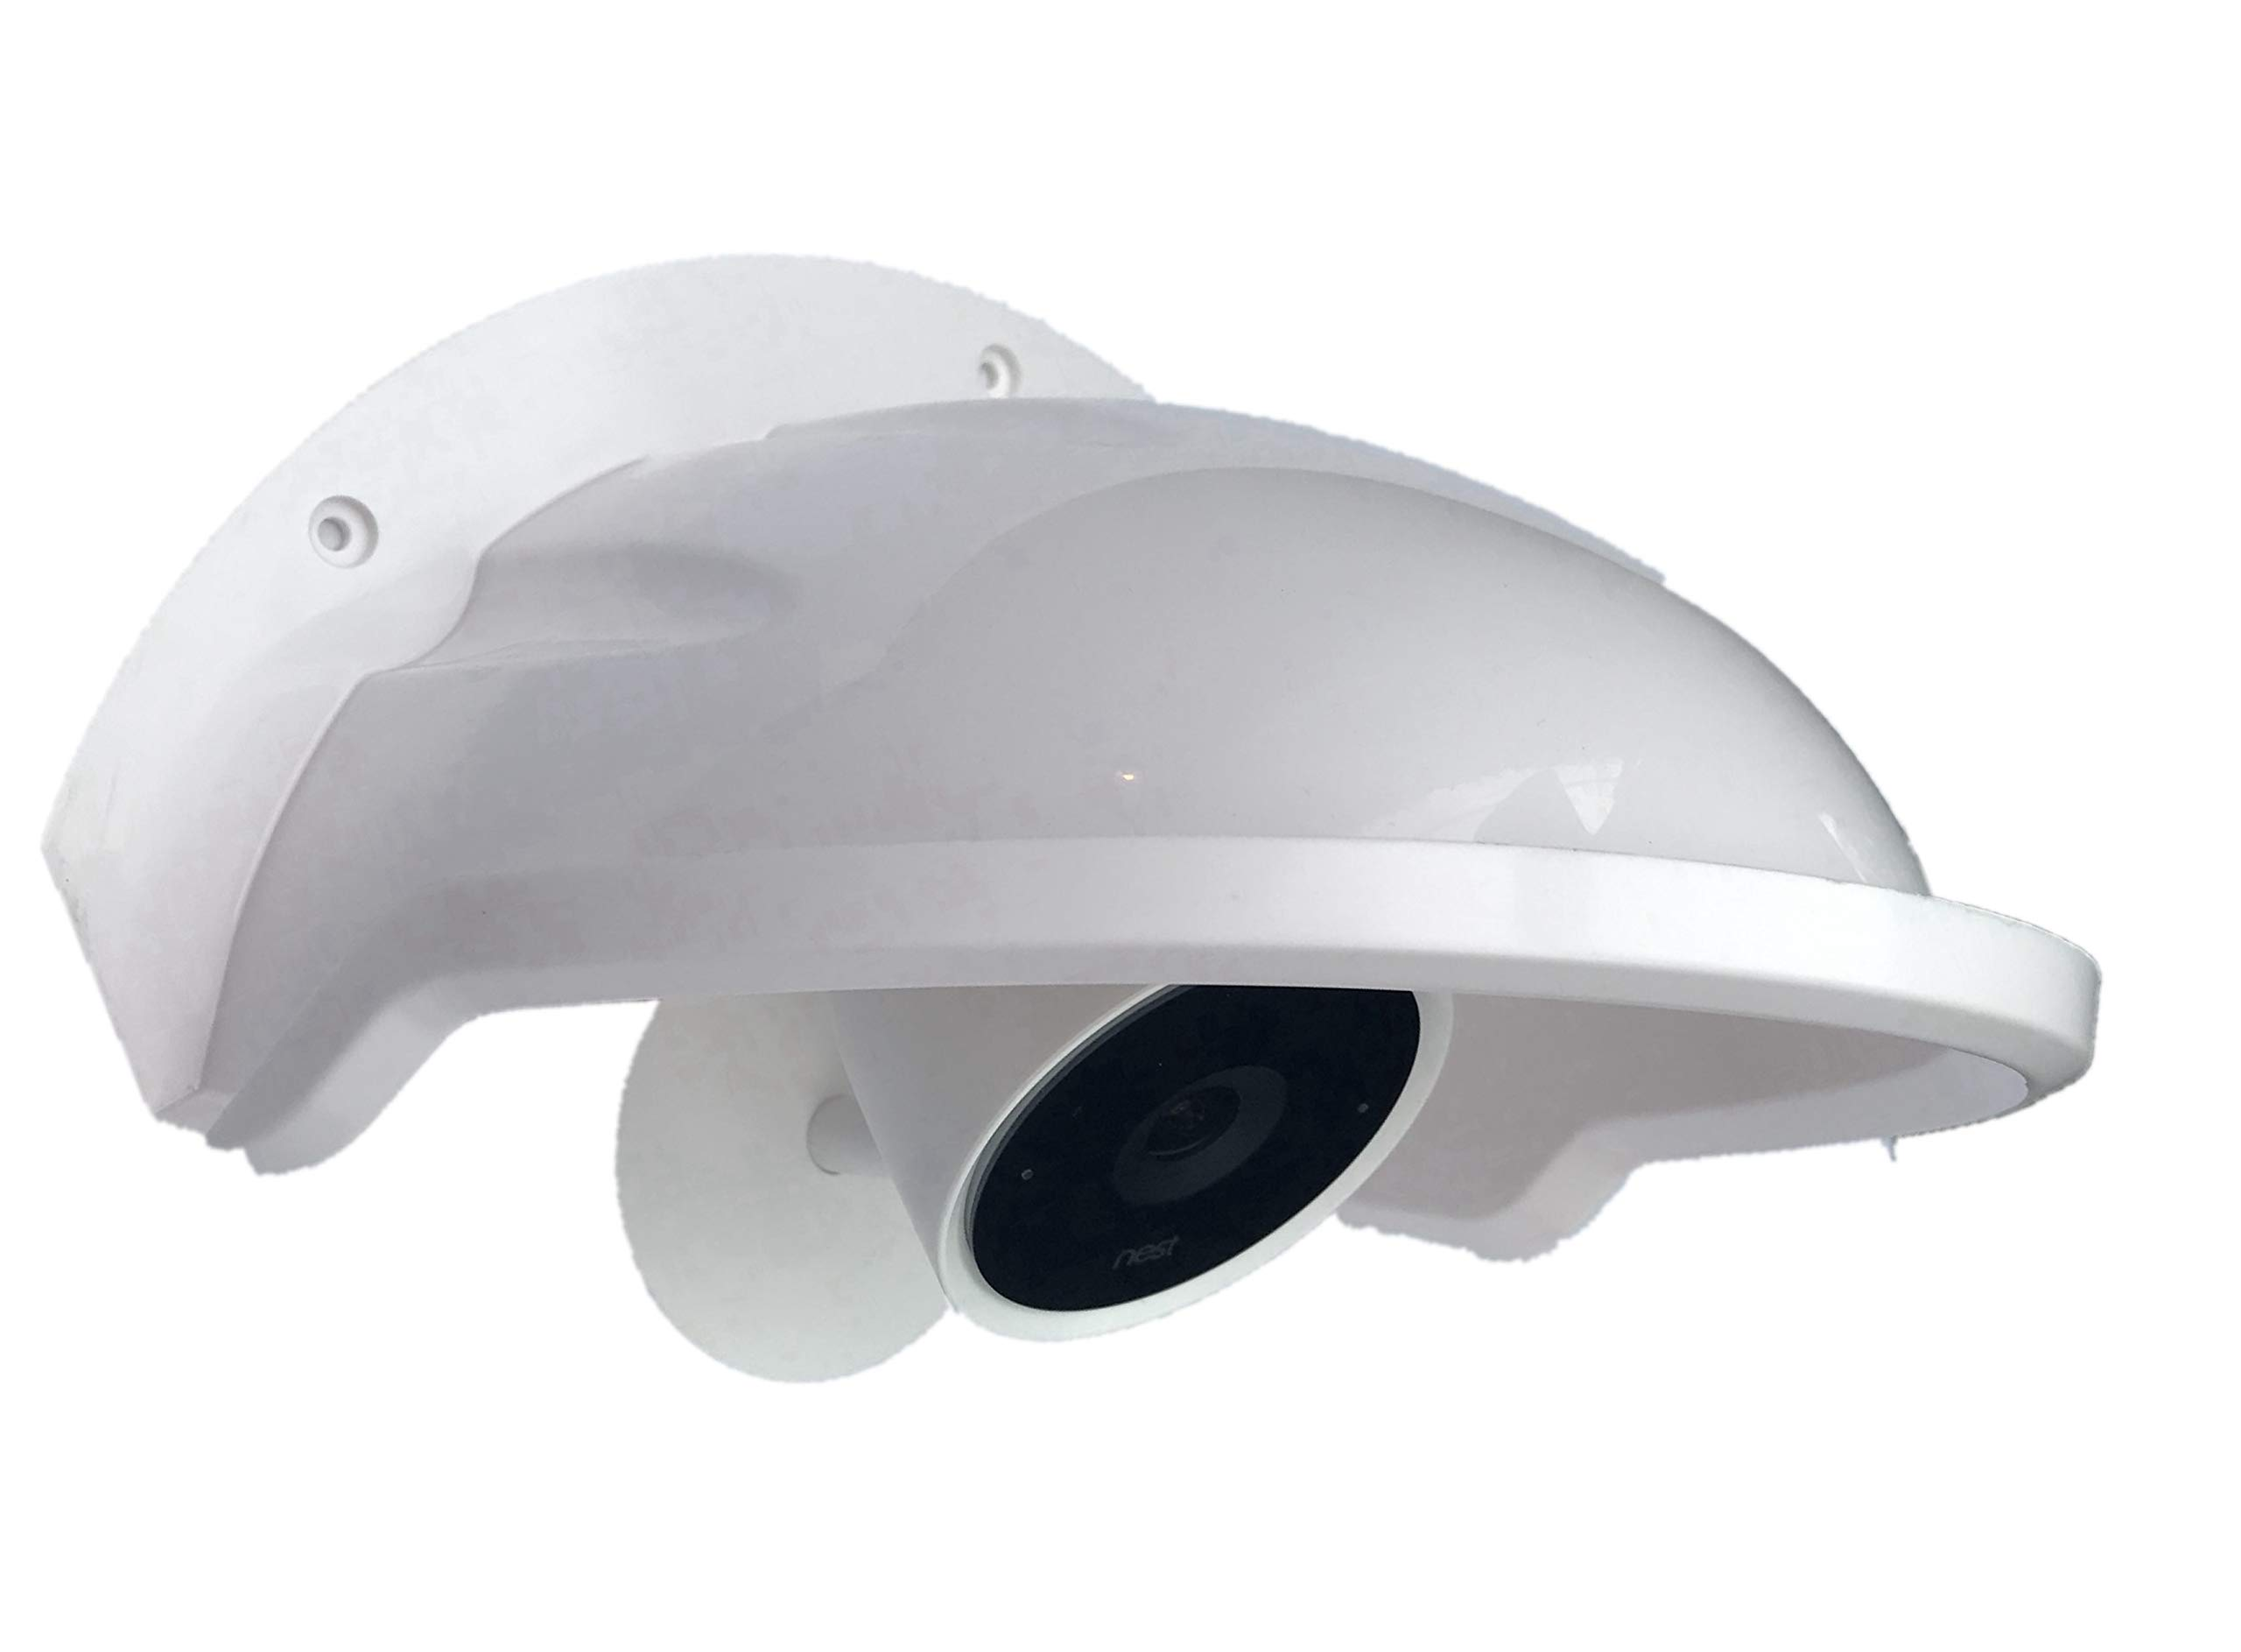 Title: Universal Sun Rain Shade Camera Cover Shield for Nest/Ring/Arlo/Dome/Bullet Outdoor Camera - White -PACK 10